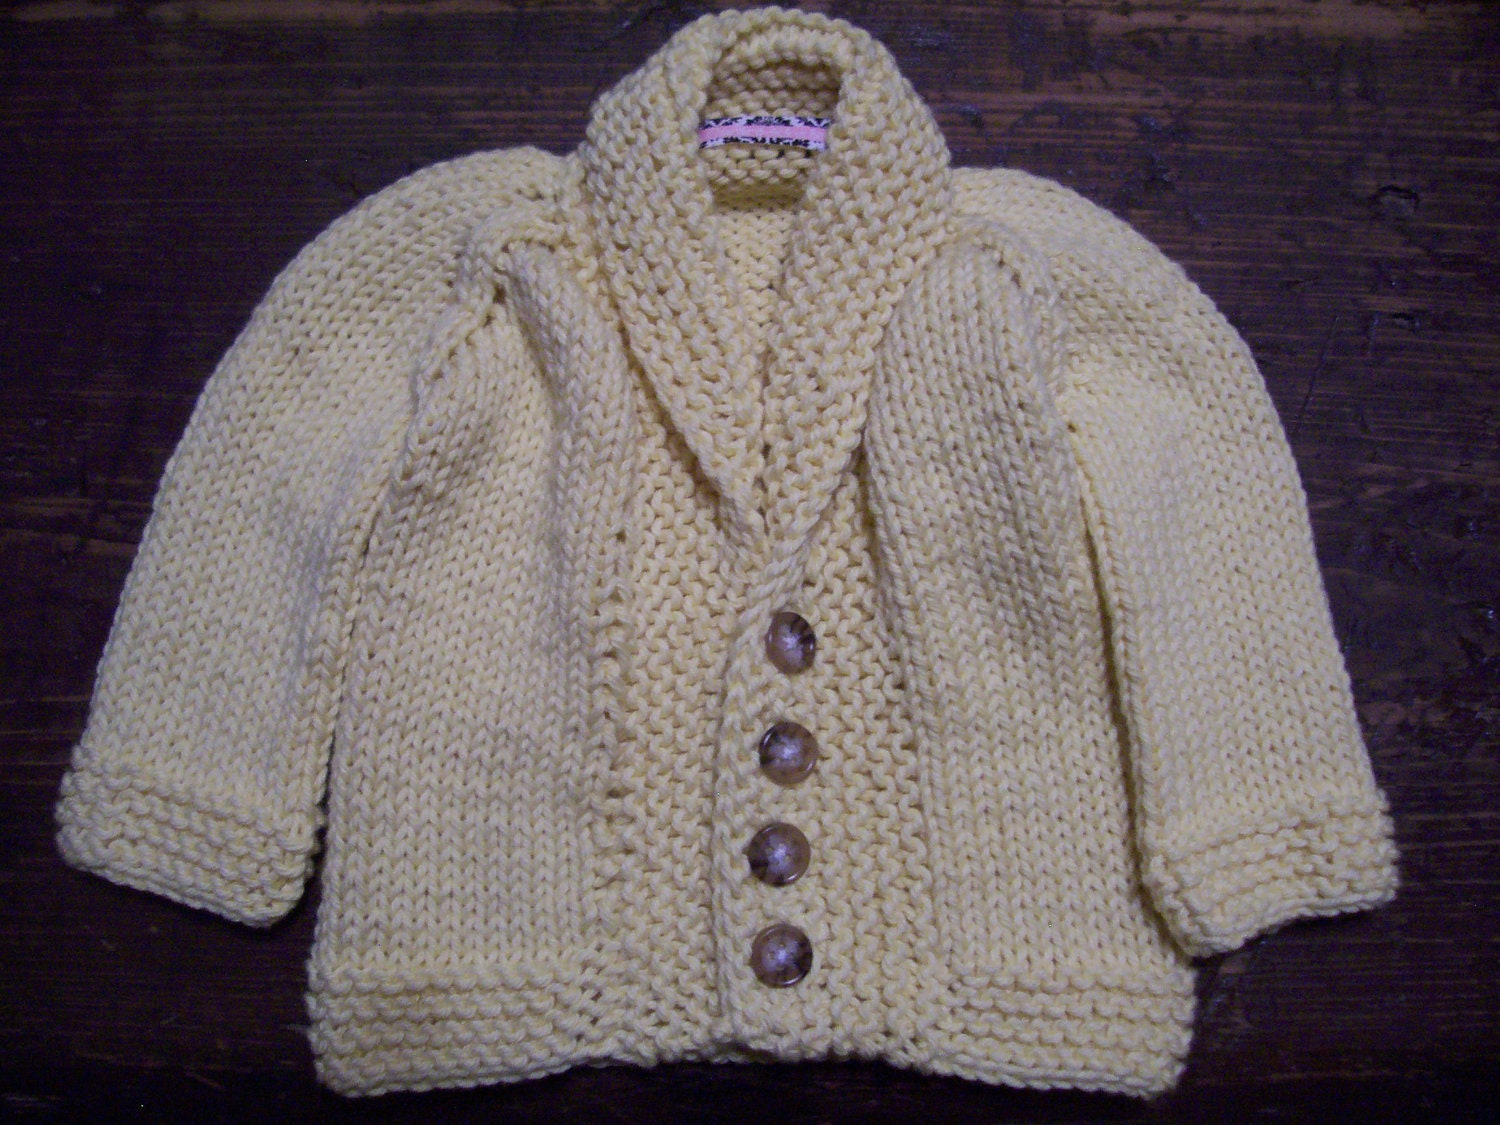 SALE 0 to 3 Month Cardigan in Pale Yellow Made with 100% Cotton